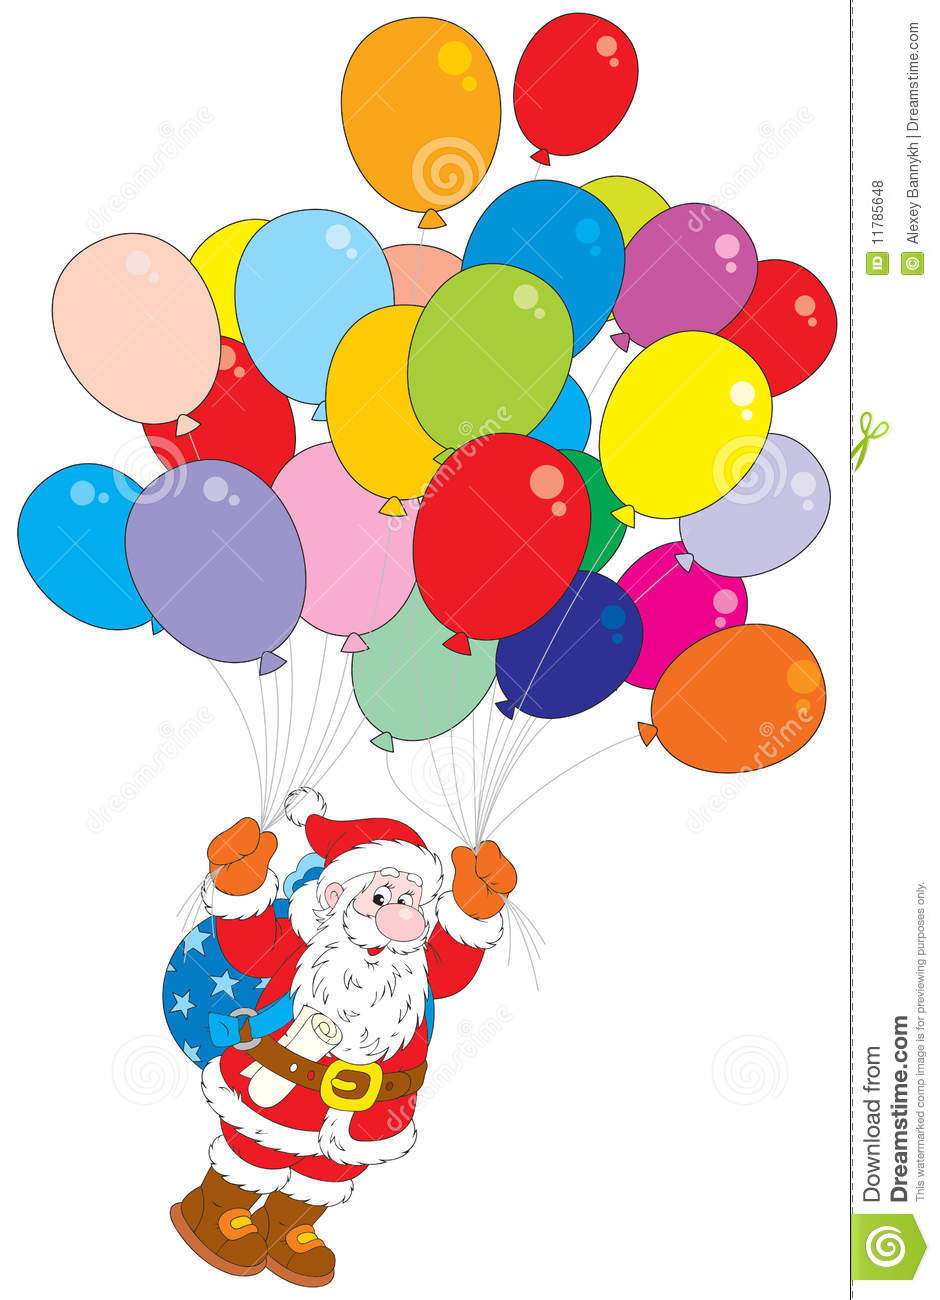 Santa Claus Flying With Multicolor Balloons Royalty Free